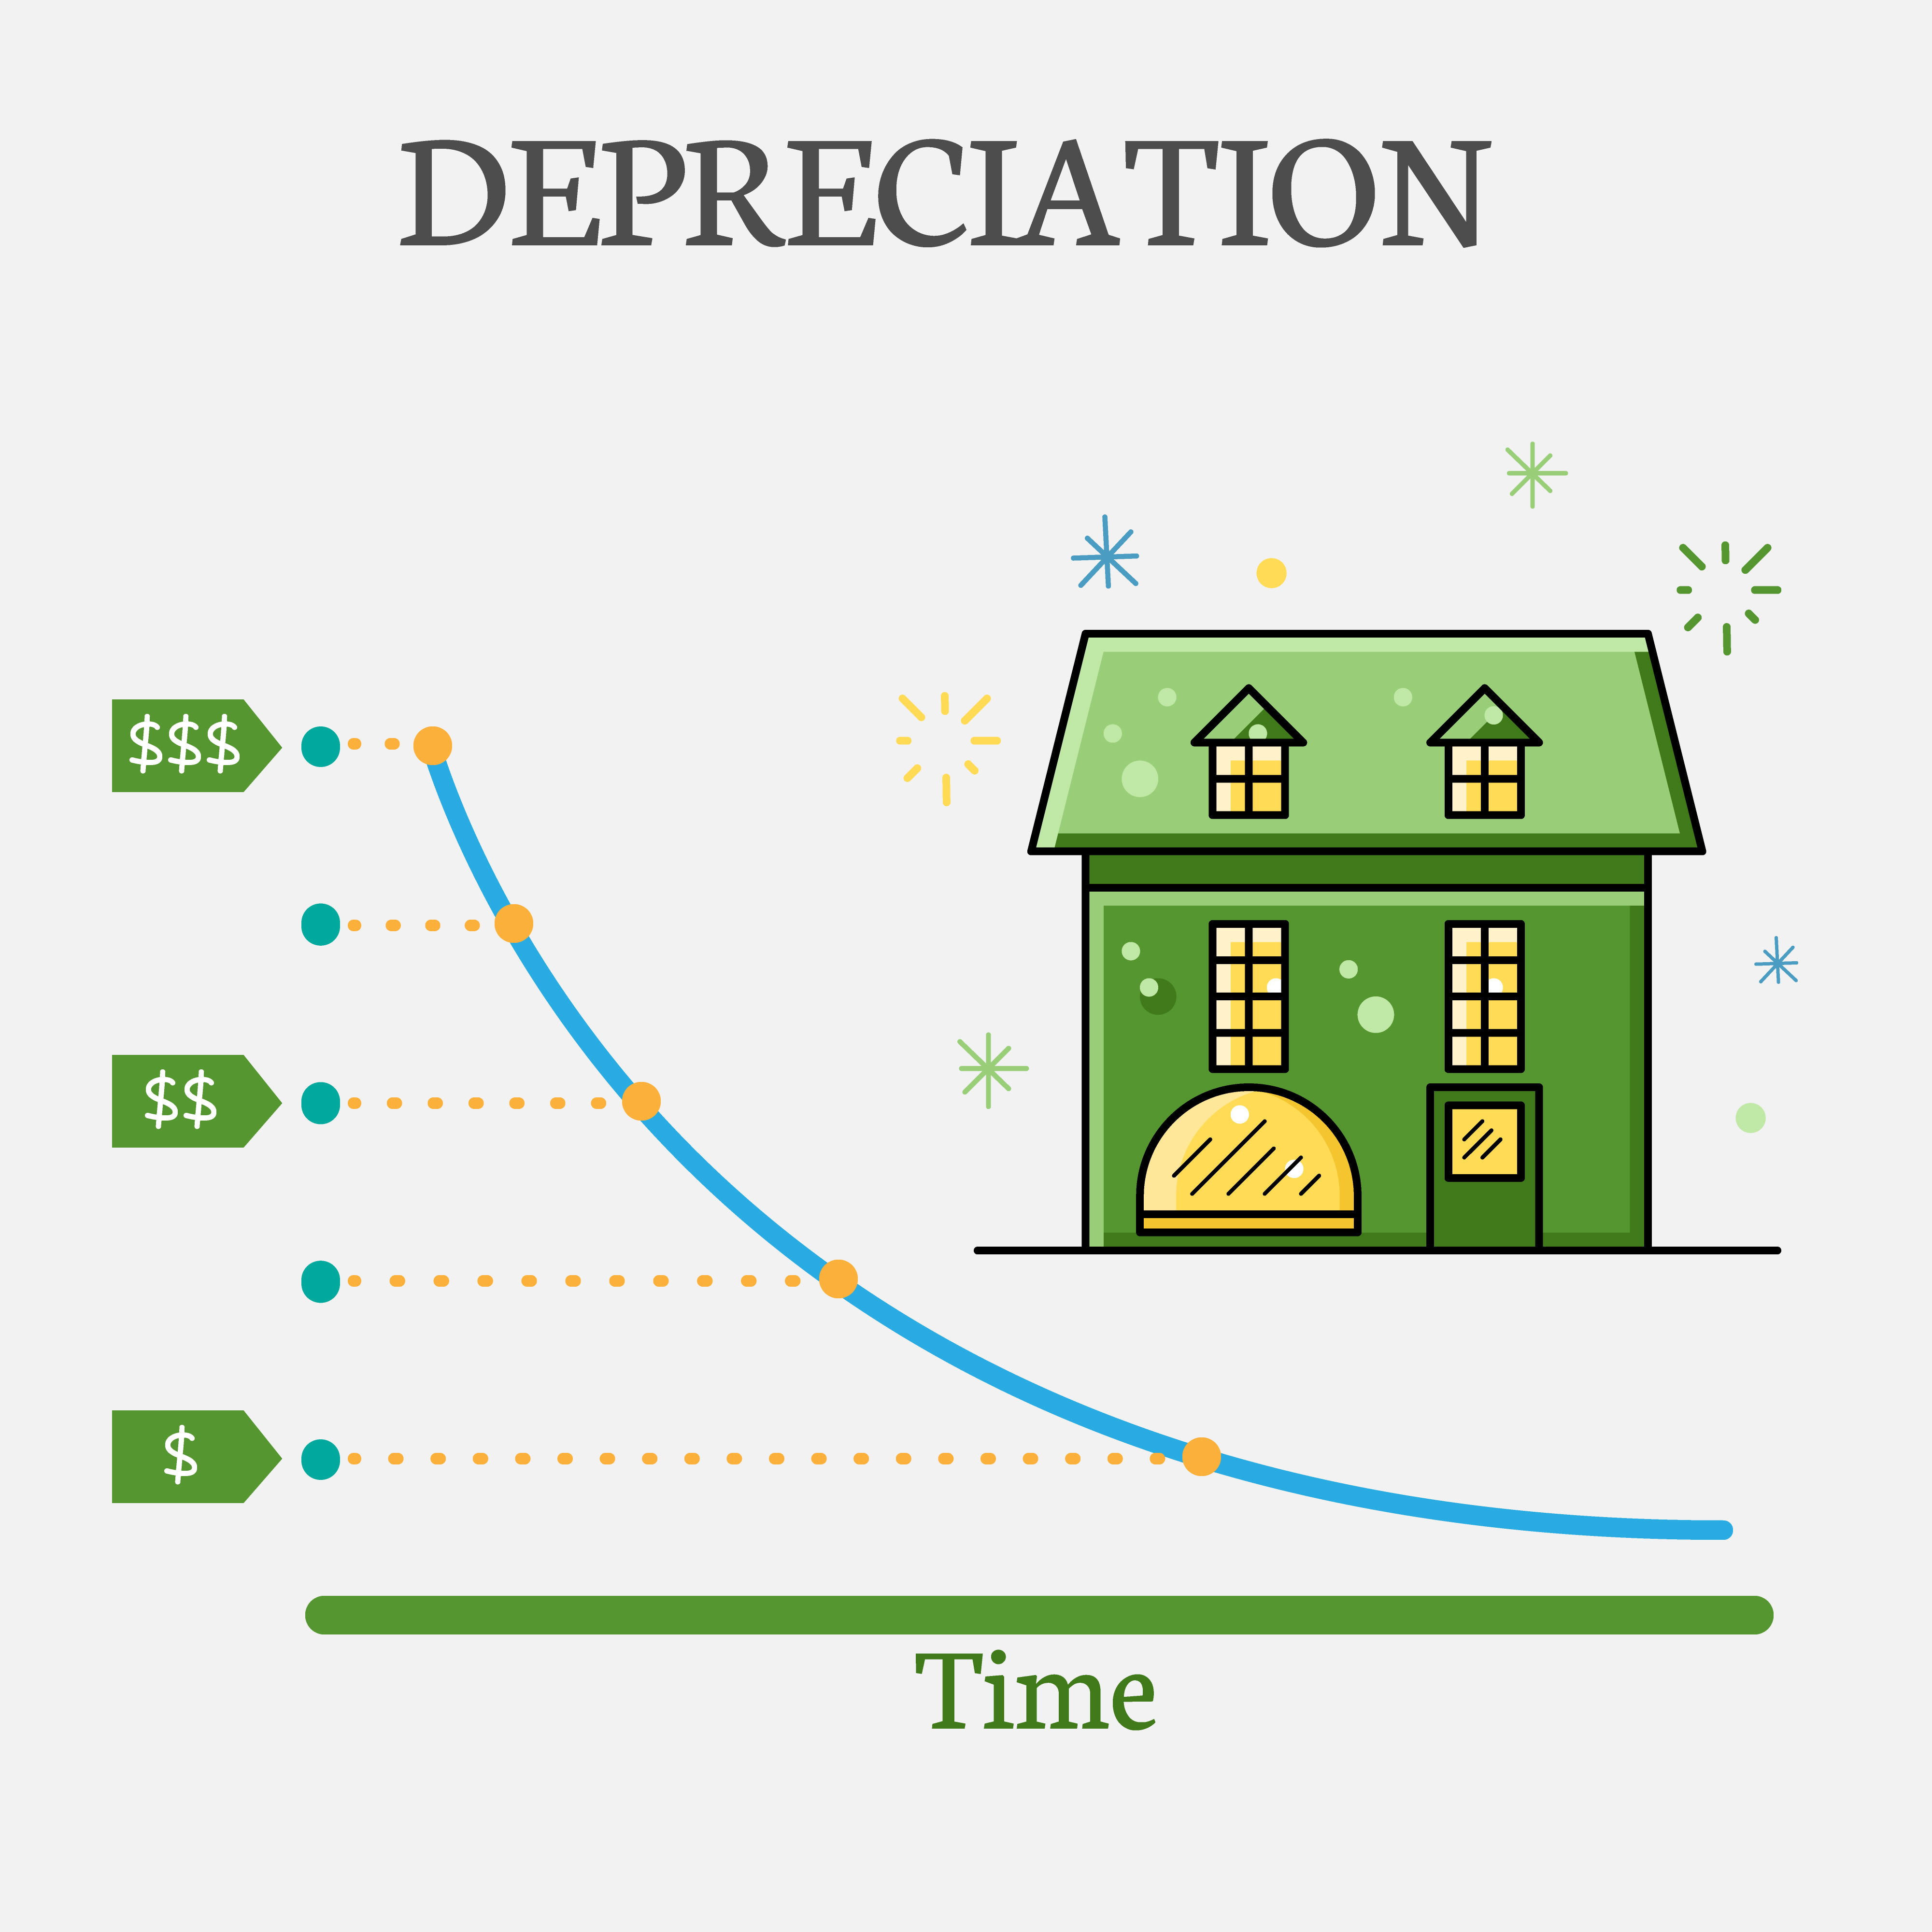 Property depreciation continues to maximise cash flow